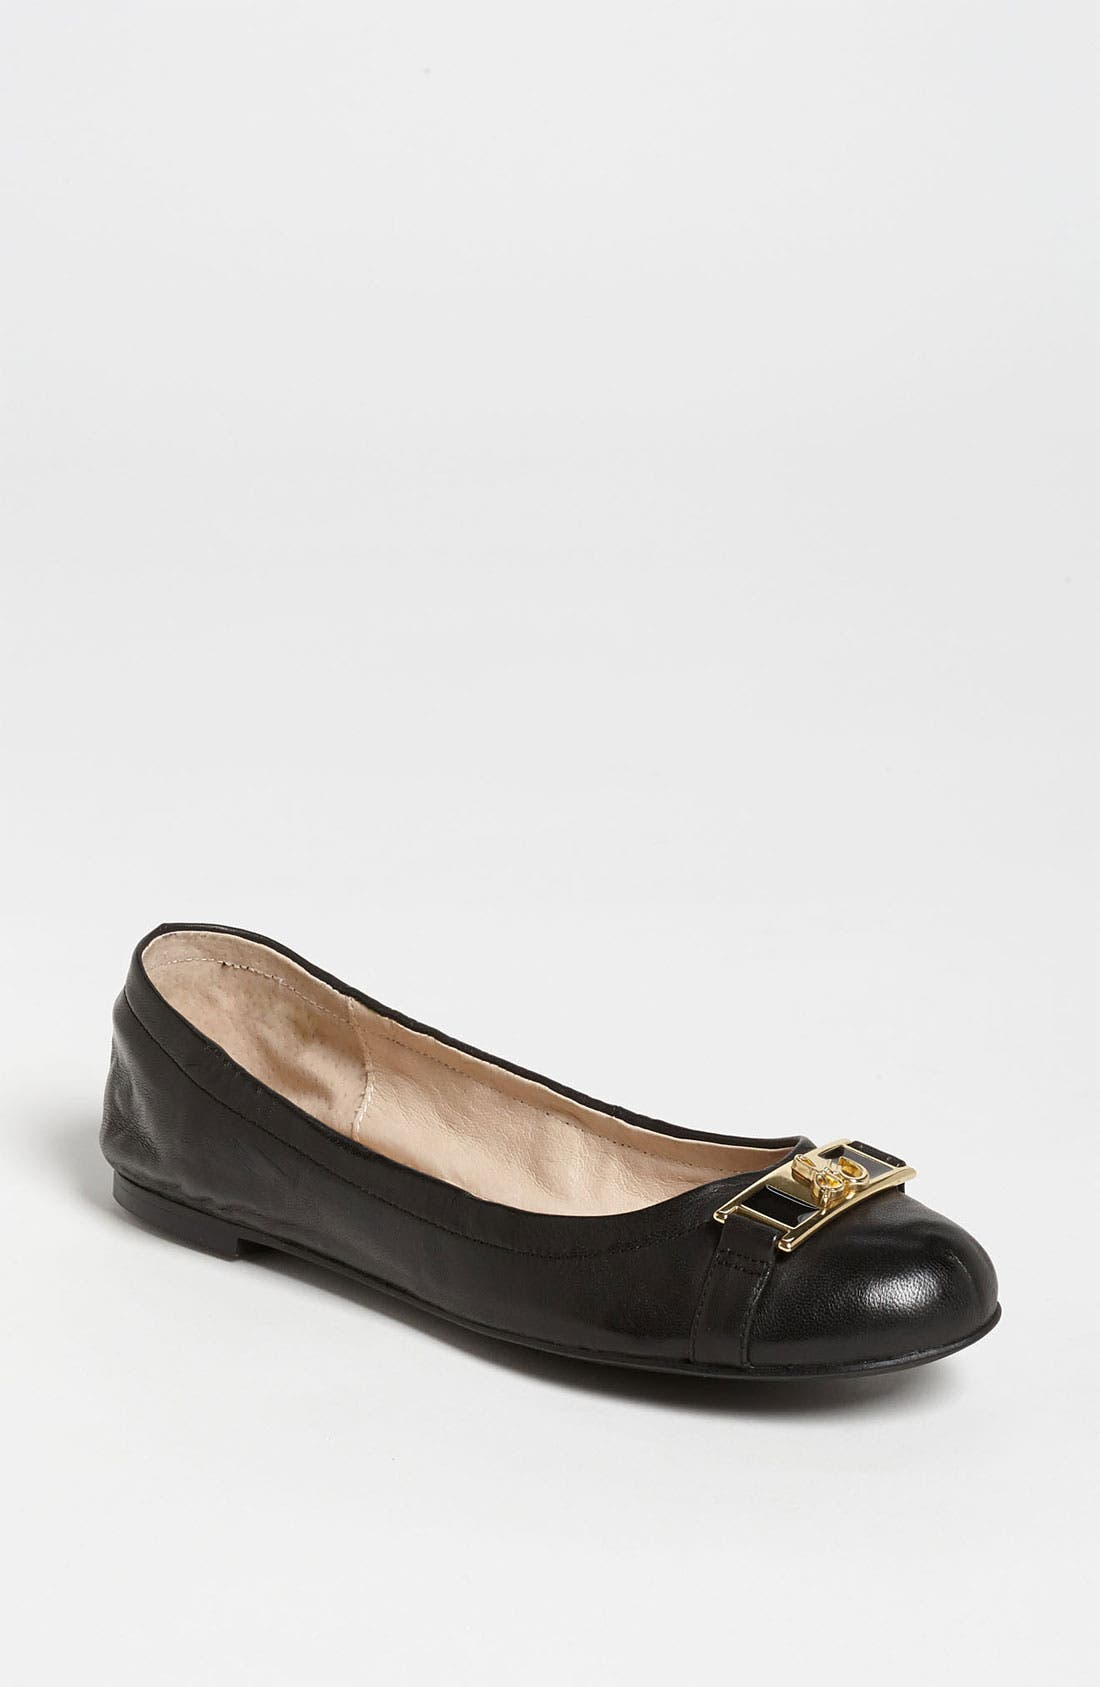 Alternate Image 1 Selected - Sam Edelman 'Betty' Flat